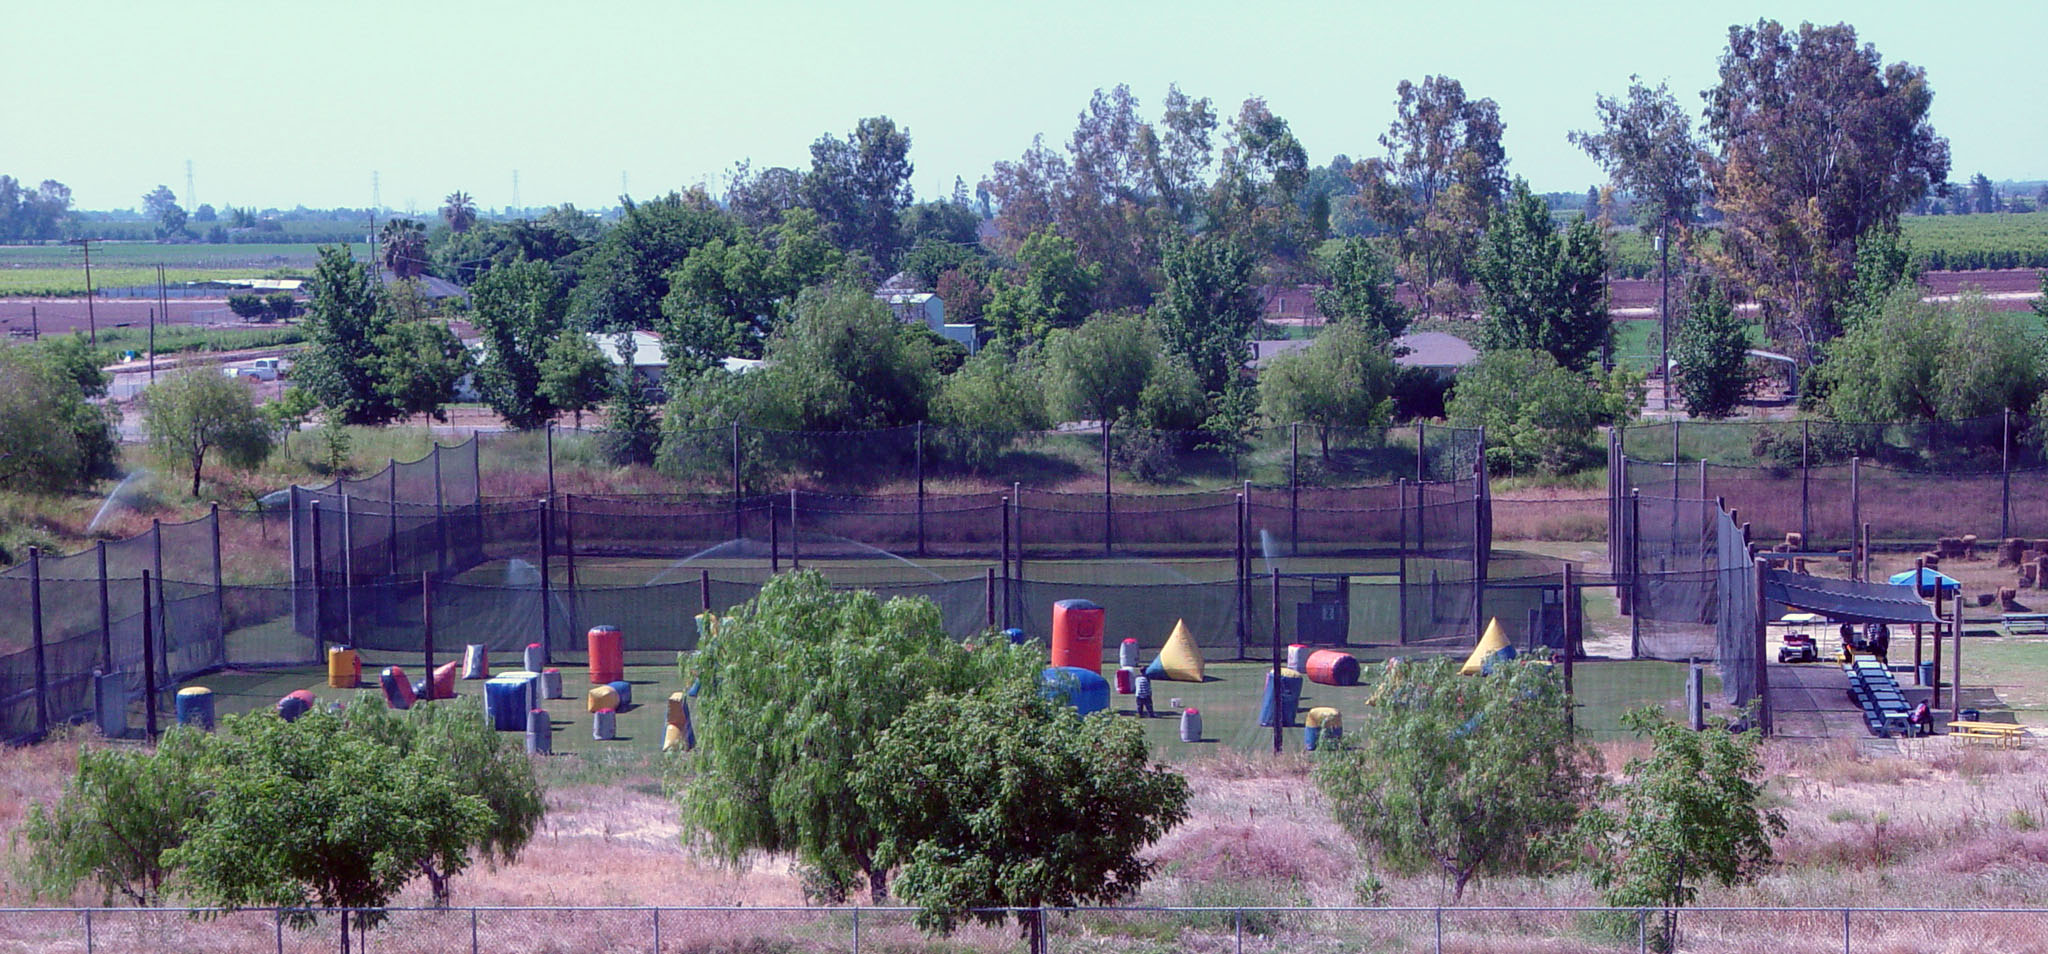 Field 3 (Field 2 in background)